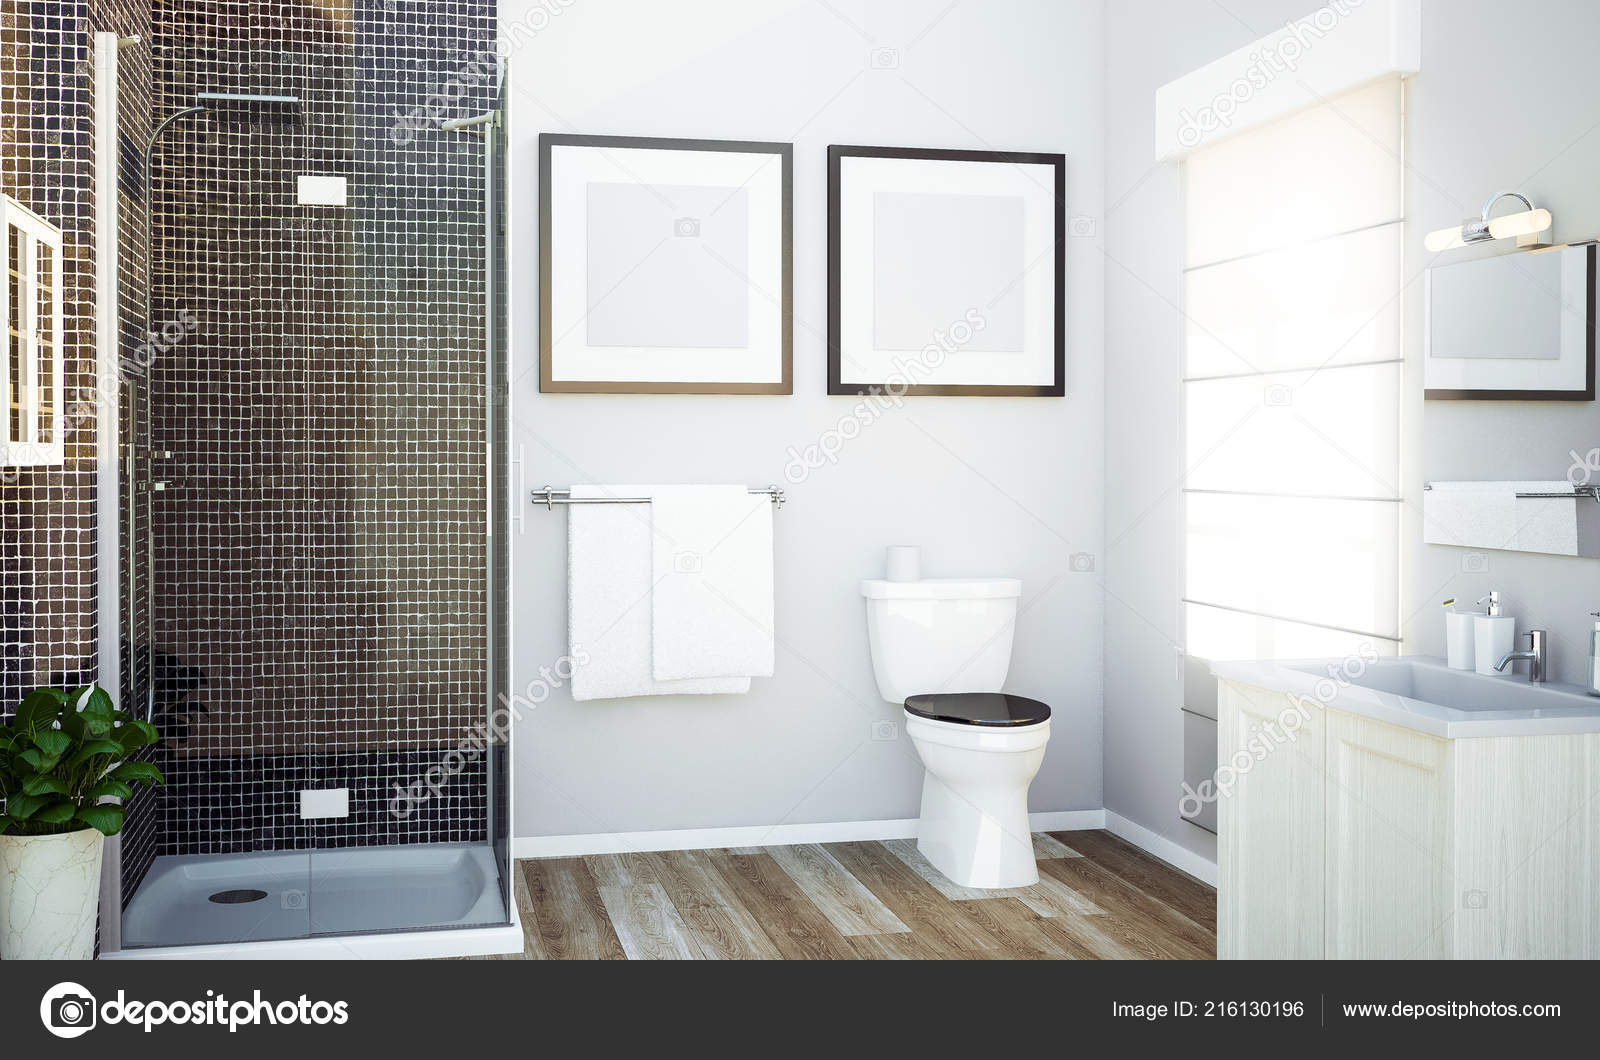 Images Bathroom Mockup Two Blank Frames Bathroom Mockup